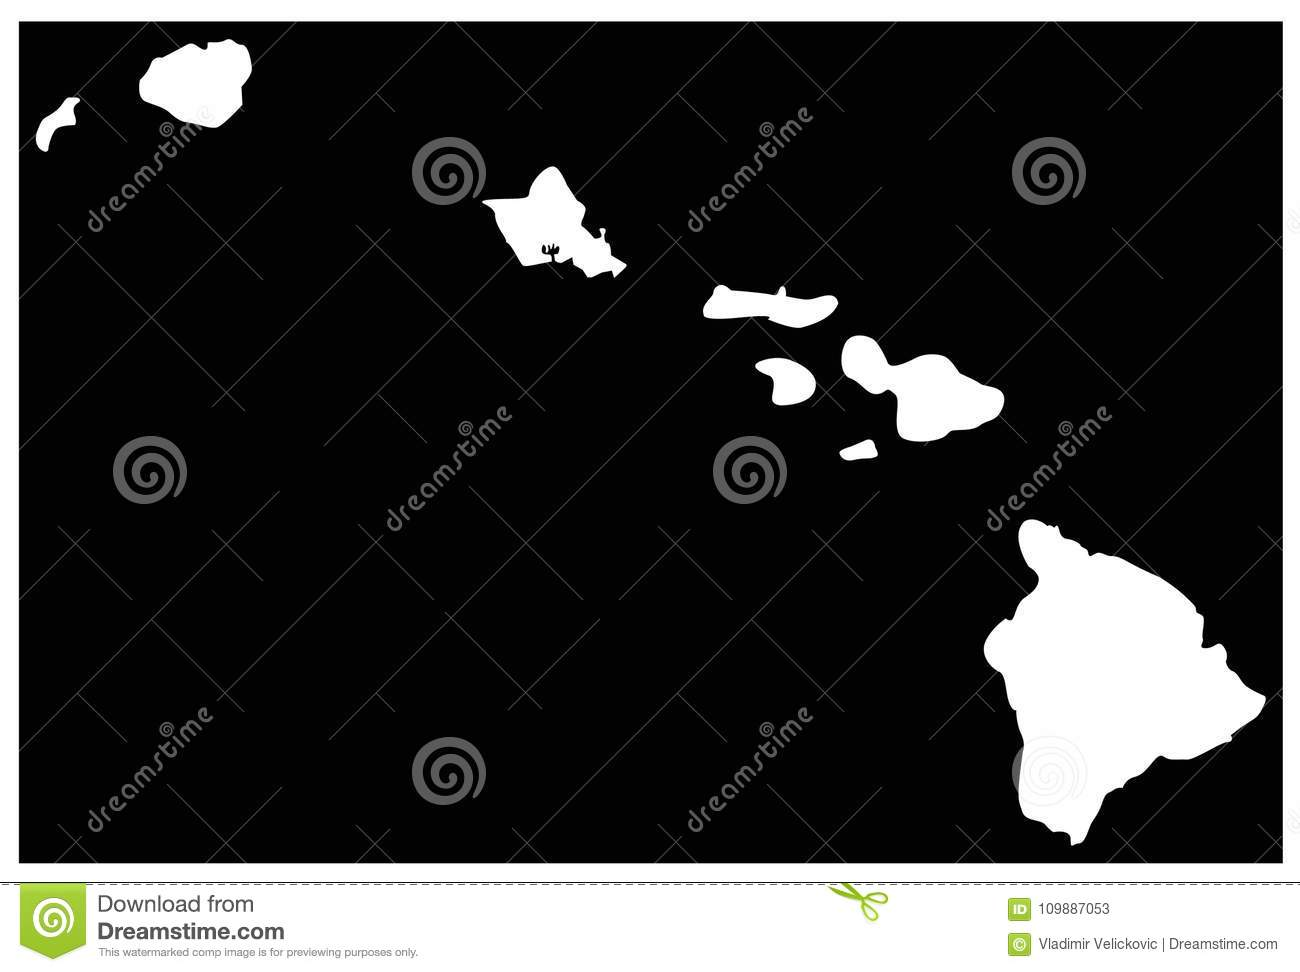 Hawaii Map - U.S. State Located In Oceania Stock Vector ...